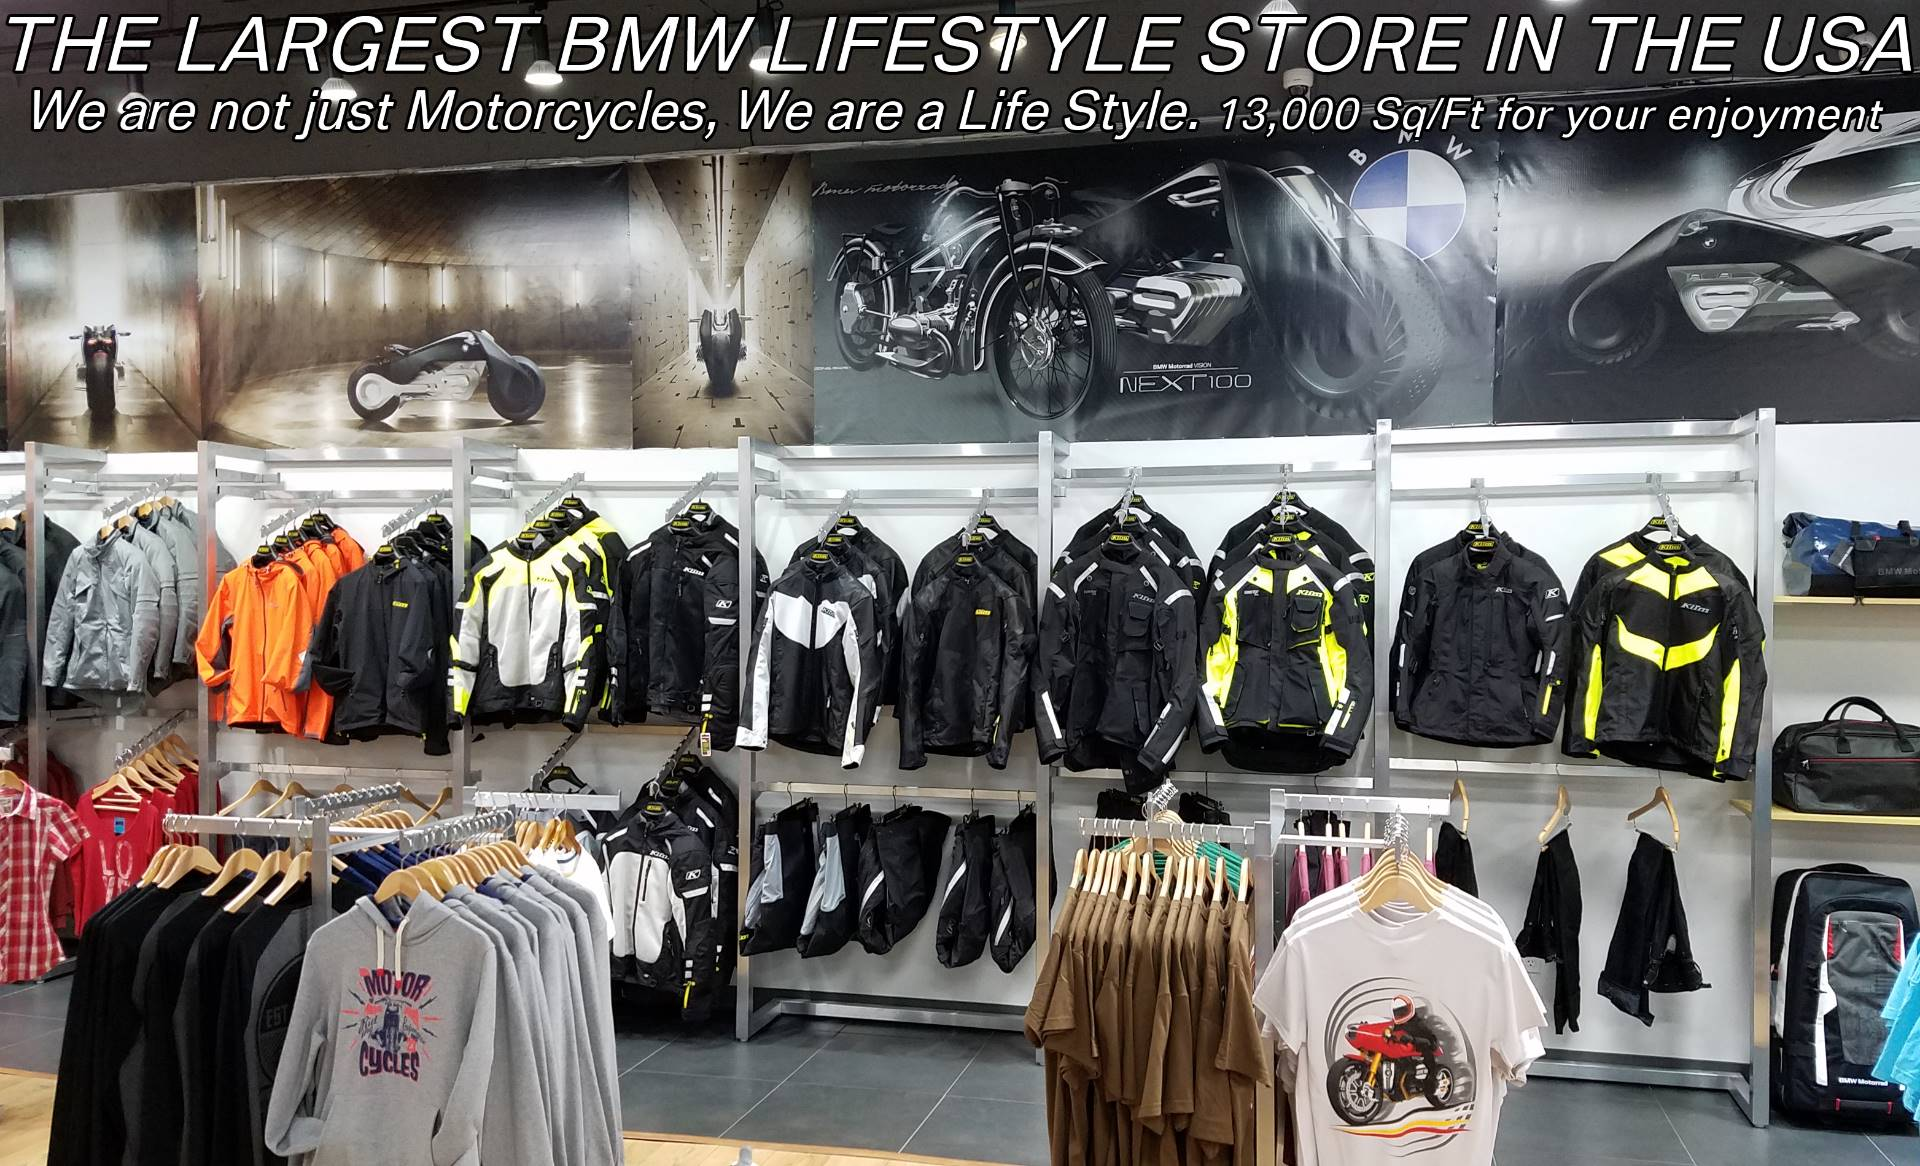 BMW Motorcycles of Miami, Motorcycles of Miami, Motorcycles Miami, New Motorcycles, Used Motorcycles, pre-owned. #BMWMotorcyclesOfMiami #MotorcyclesOfMiami - Photo 42